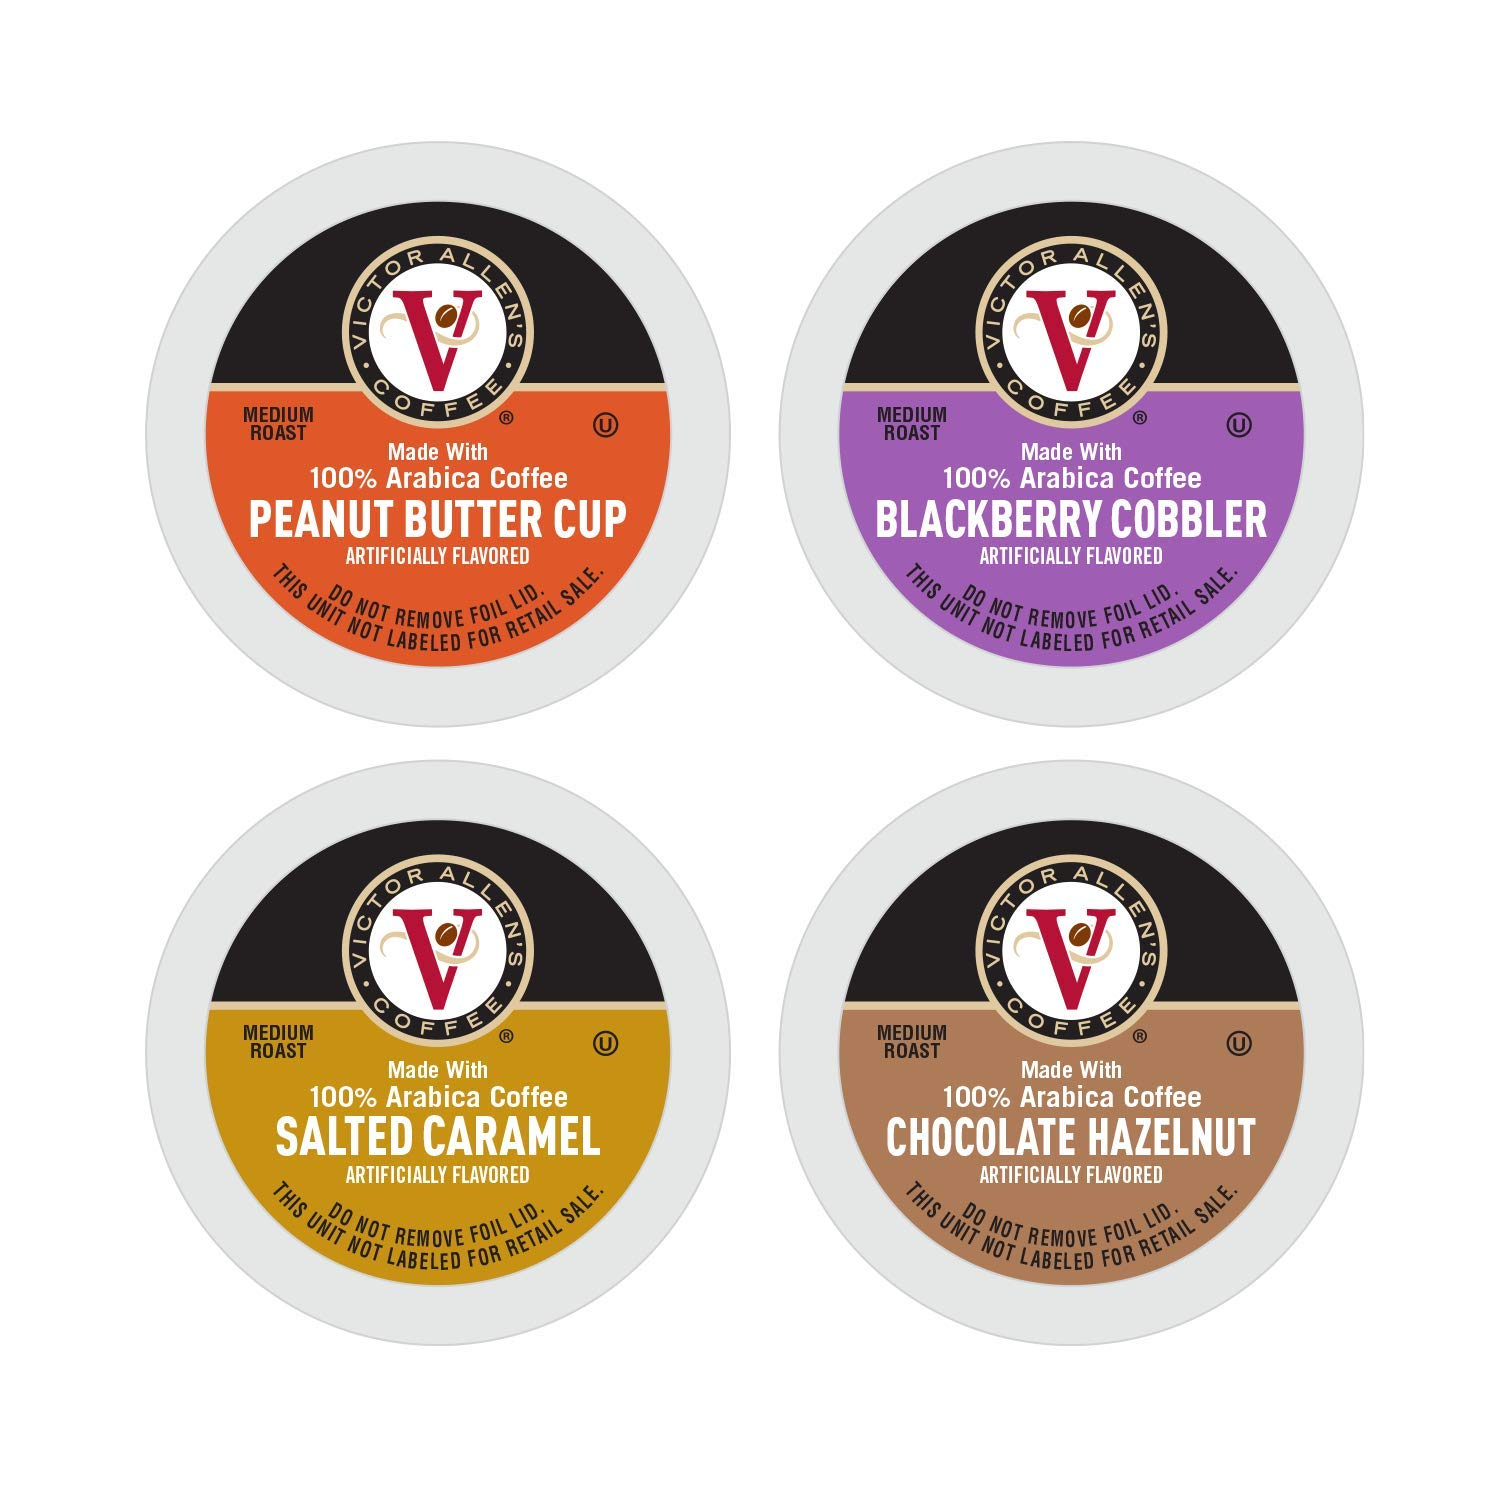 Sweet and Salty Variety Pack for K-Cup Keurig 2.0 Brewers, 96 Count, Peanut Butter Cup, Salted Caramel, Blackberry Cobbler, and Chocolate Hazelnut, Victor Allen's Coffee Single Serve Coffee Pods